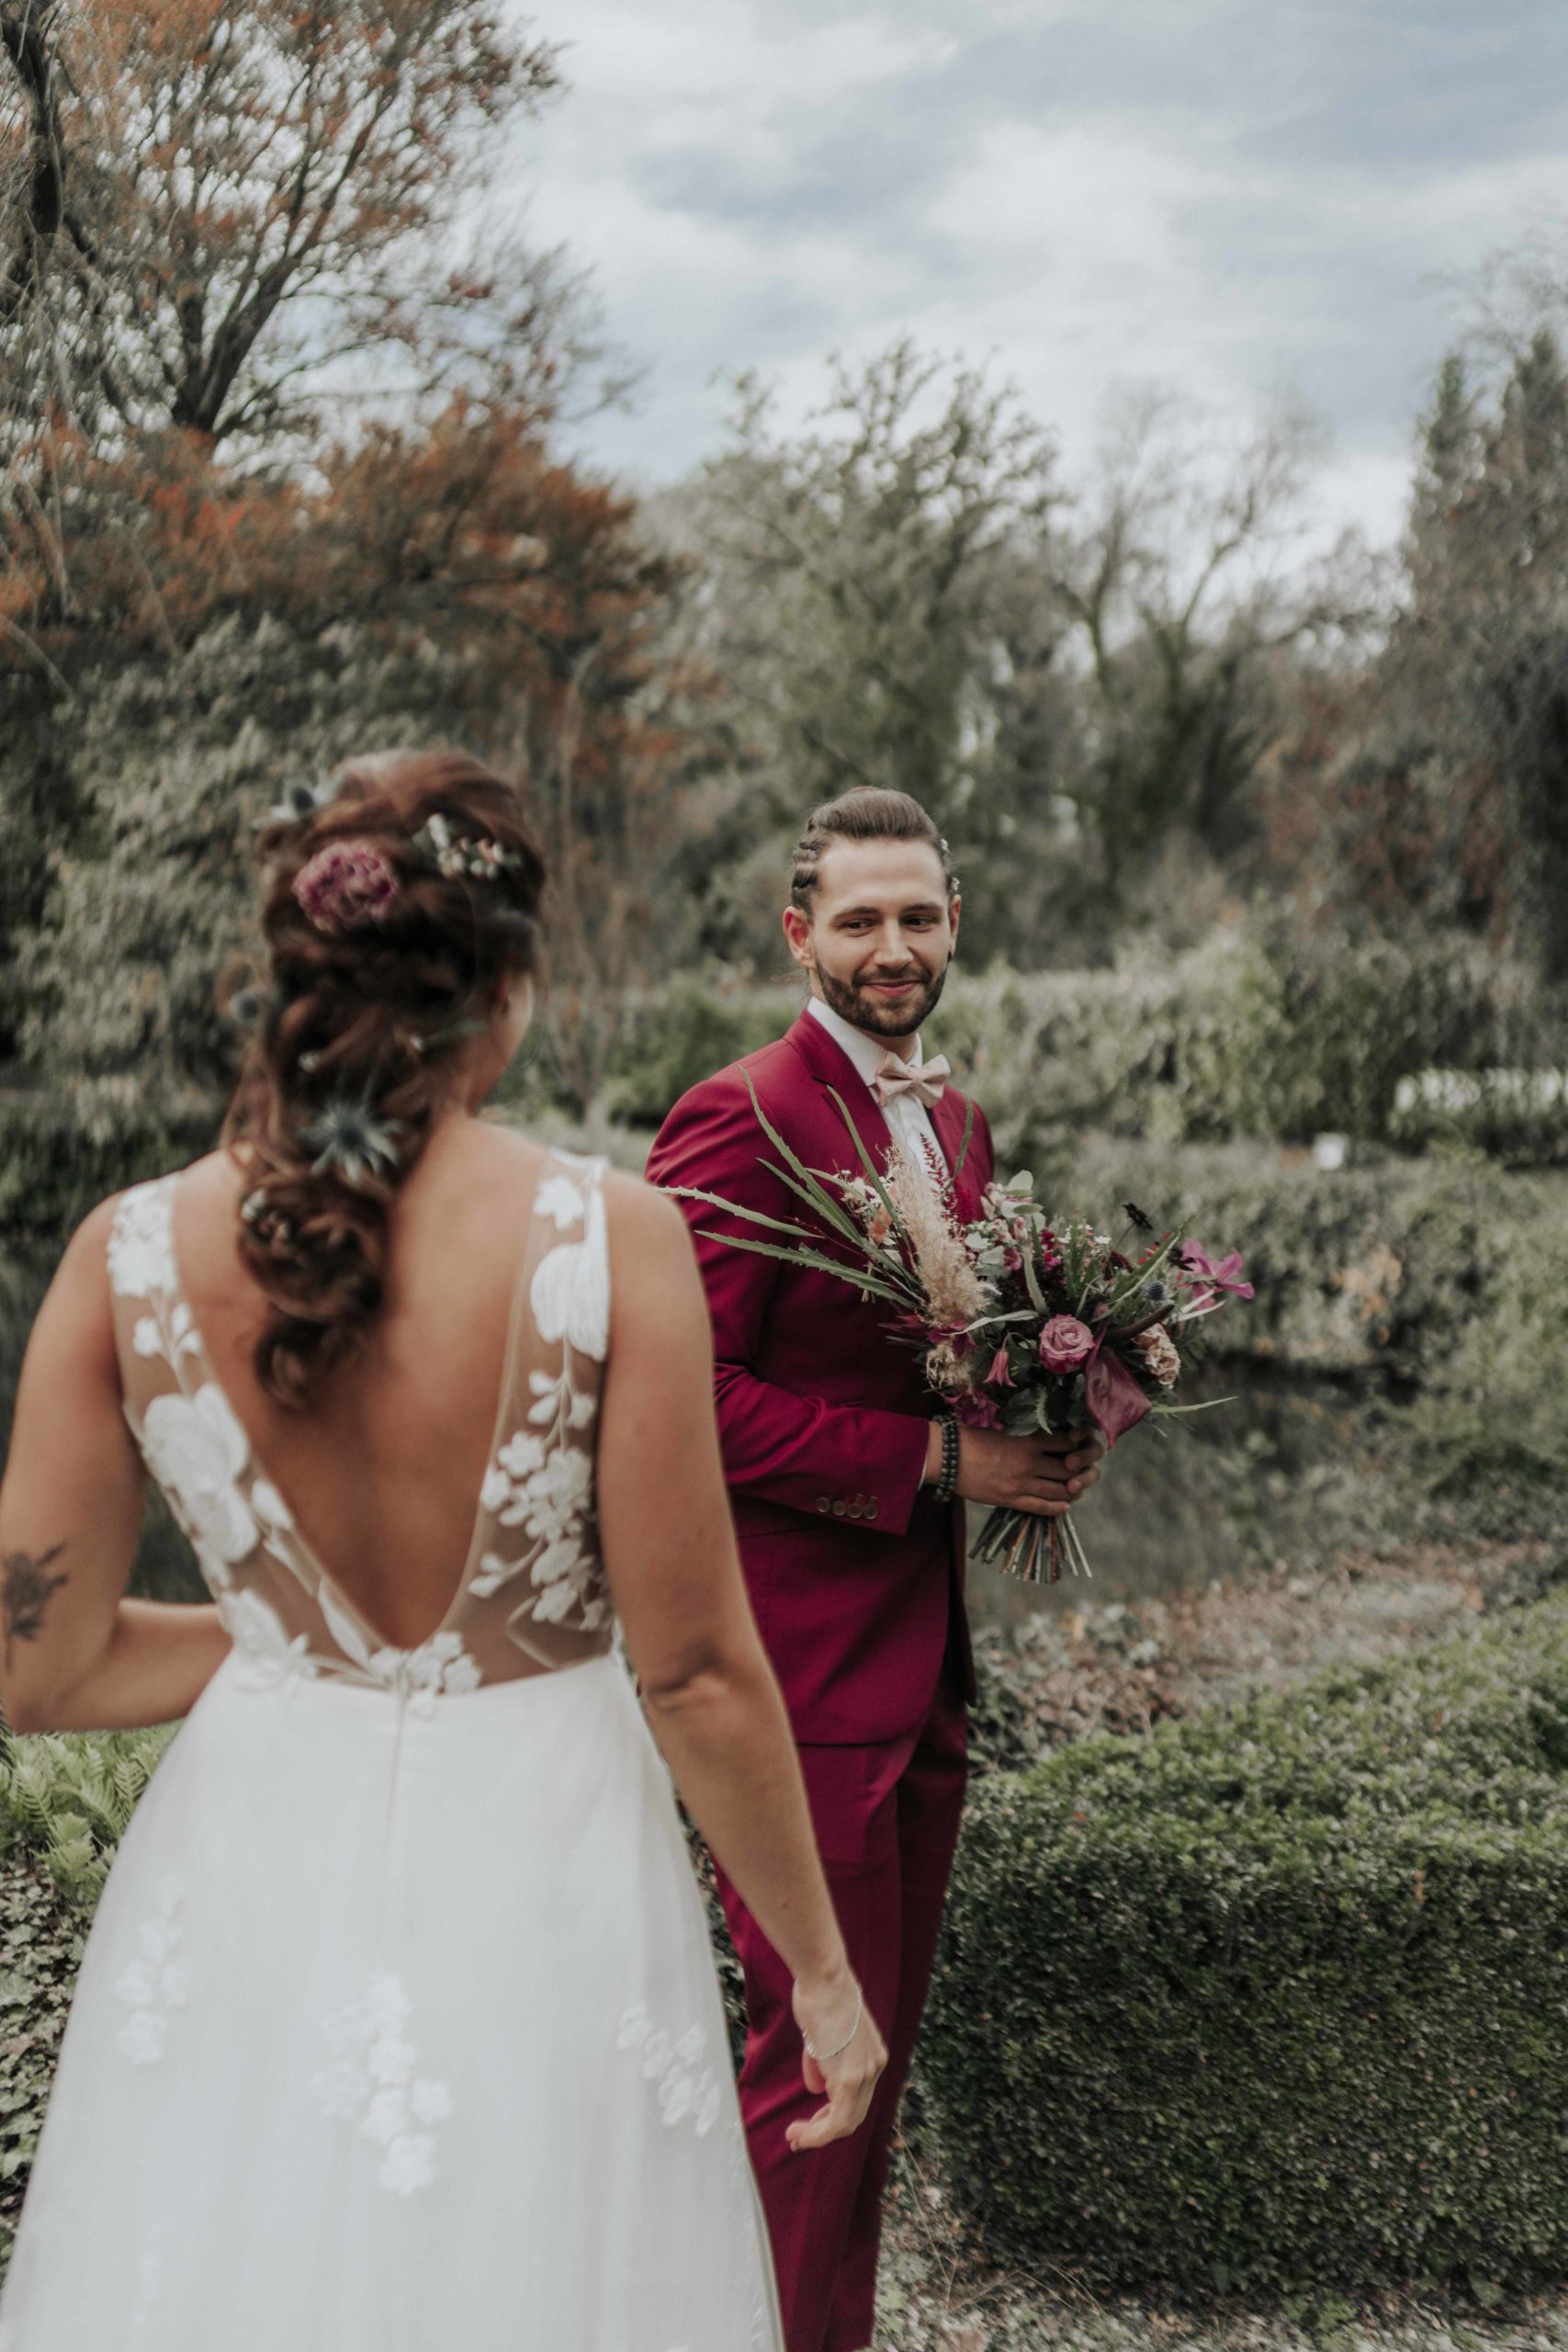 FOREVER_FANNY_MYARD_PHOTOGRAPHY_LN_MARIAGE-246